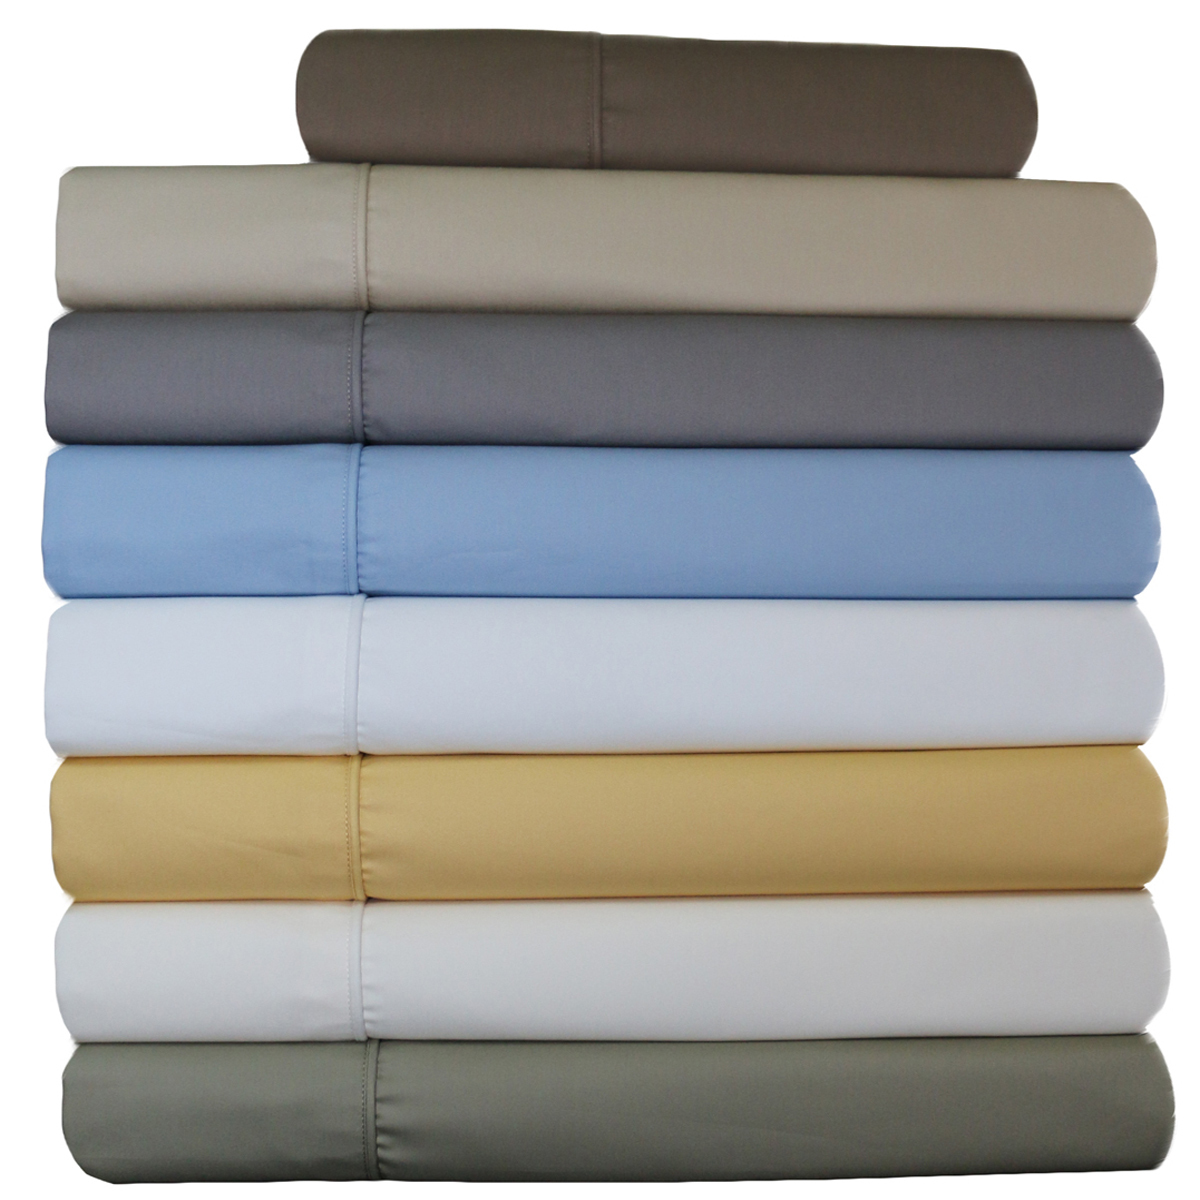 Split California King Sheets For Adjustable Beds